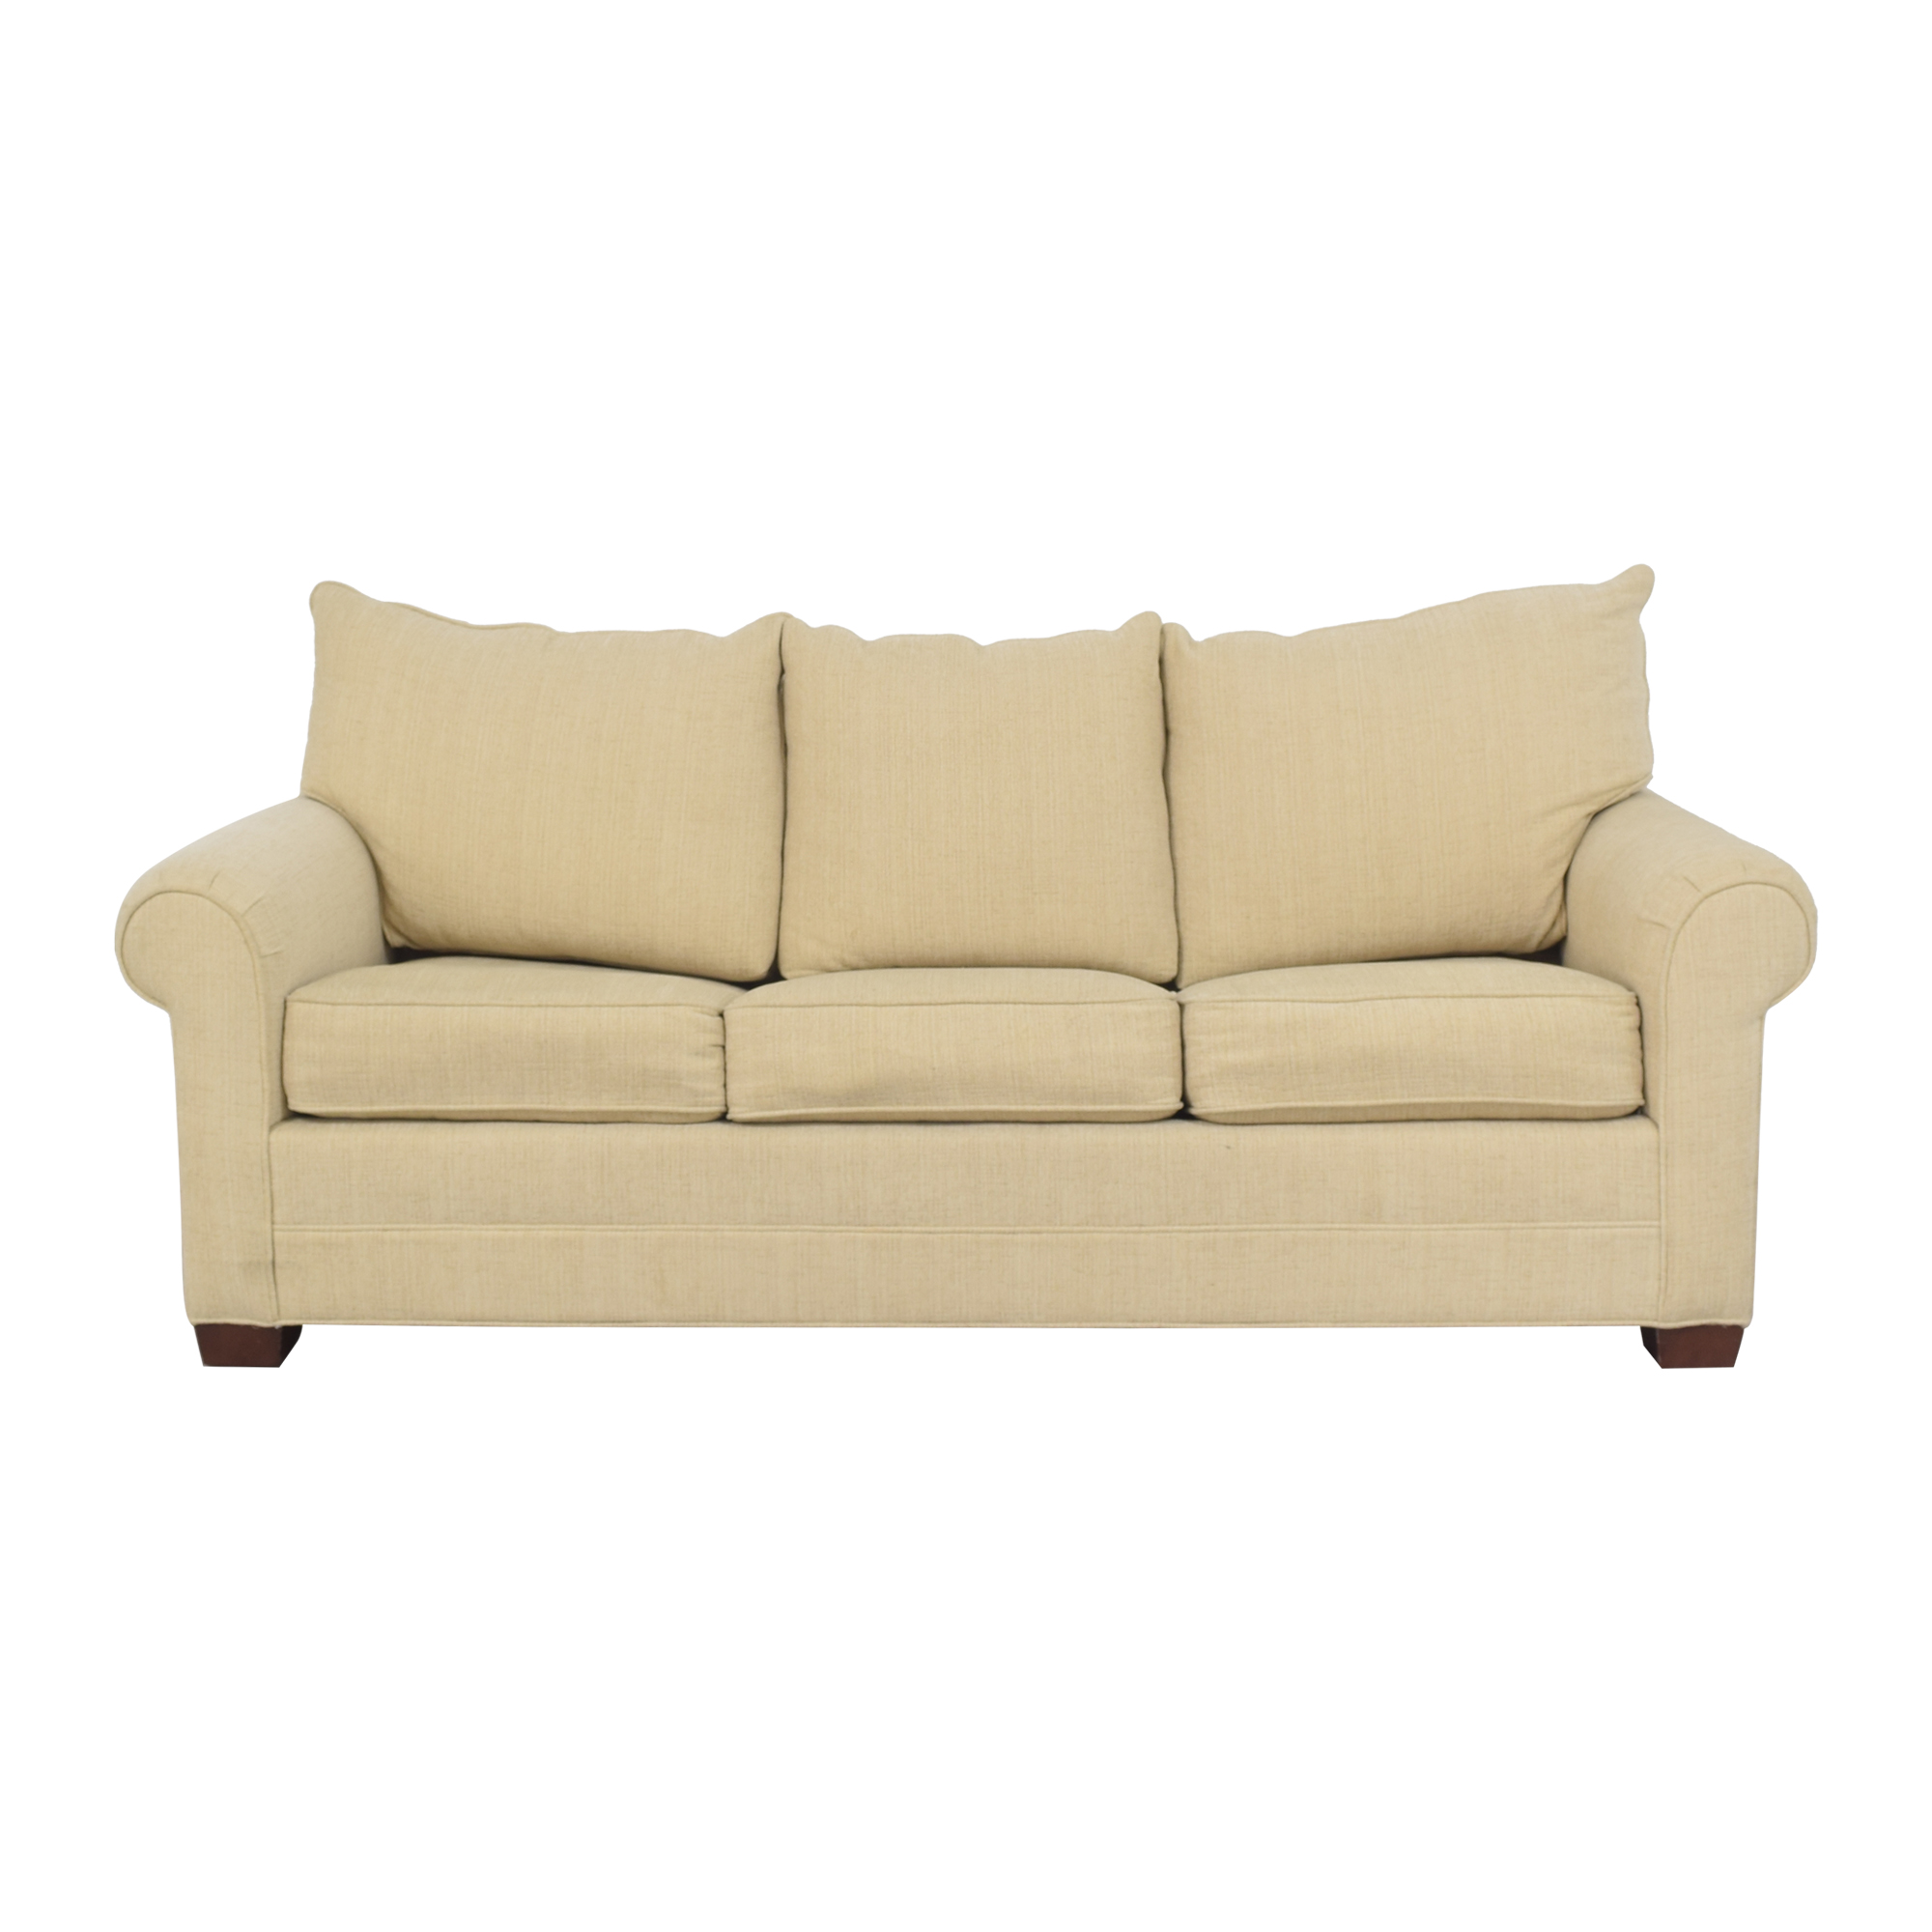 Huntington House Huntington House Roll Arm Sleeper Sofa